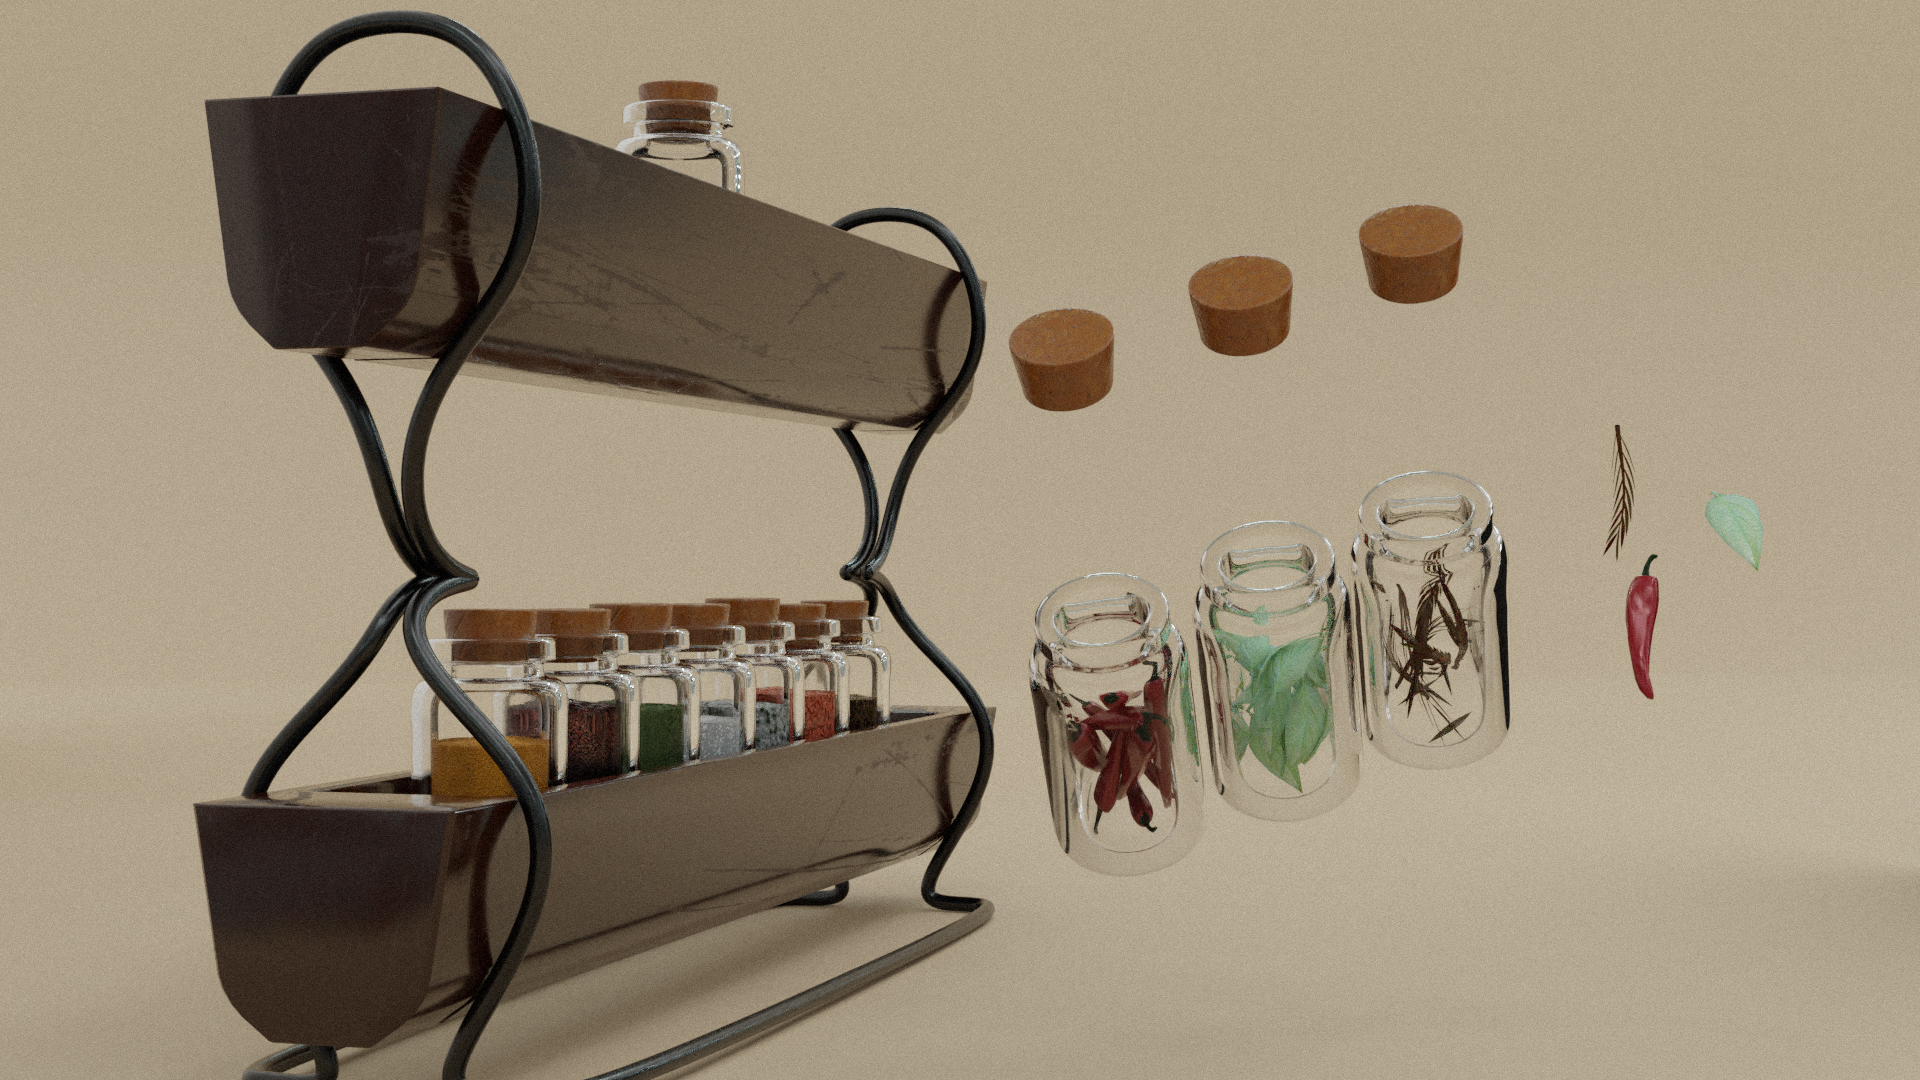 Vol2. Kitchen Essentials Asset Pack by Davilion preview image 9